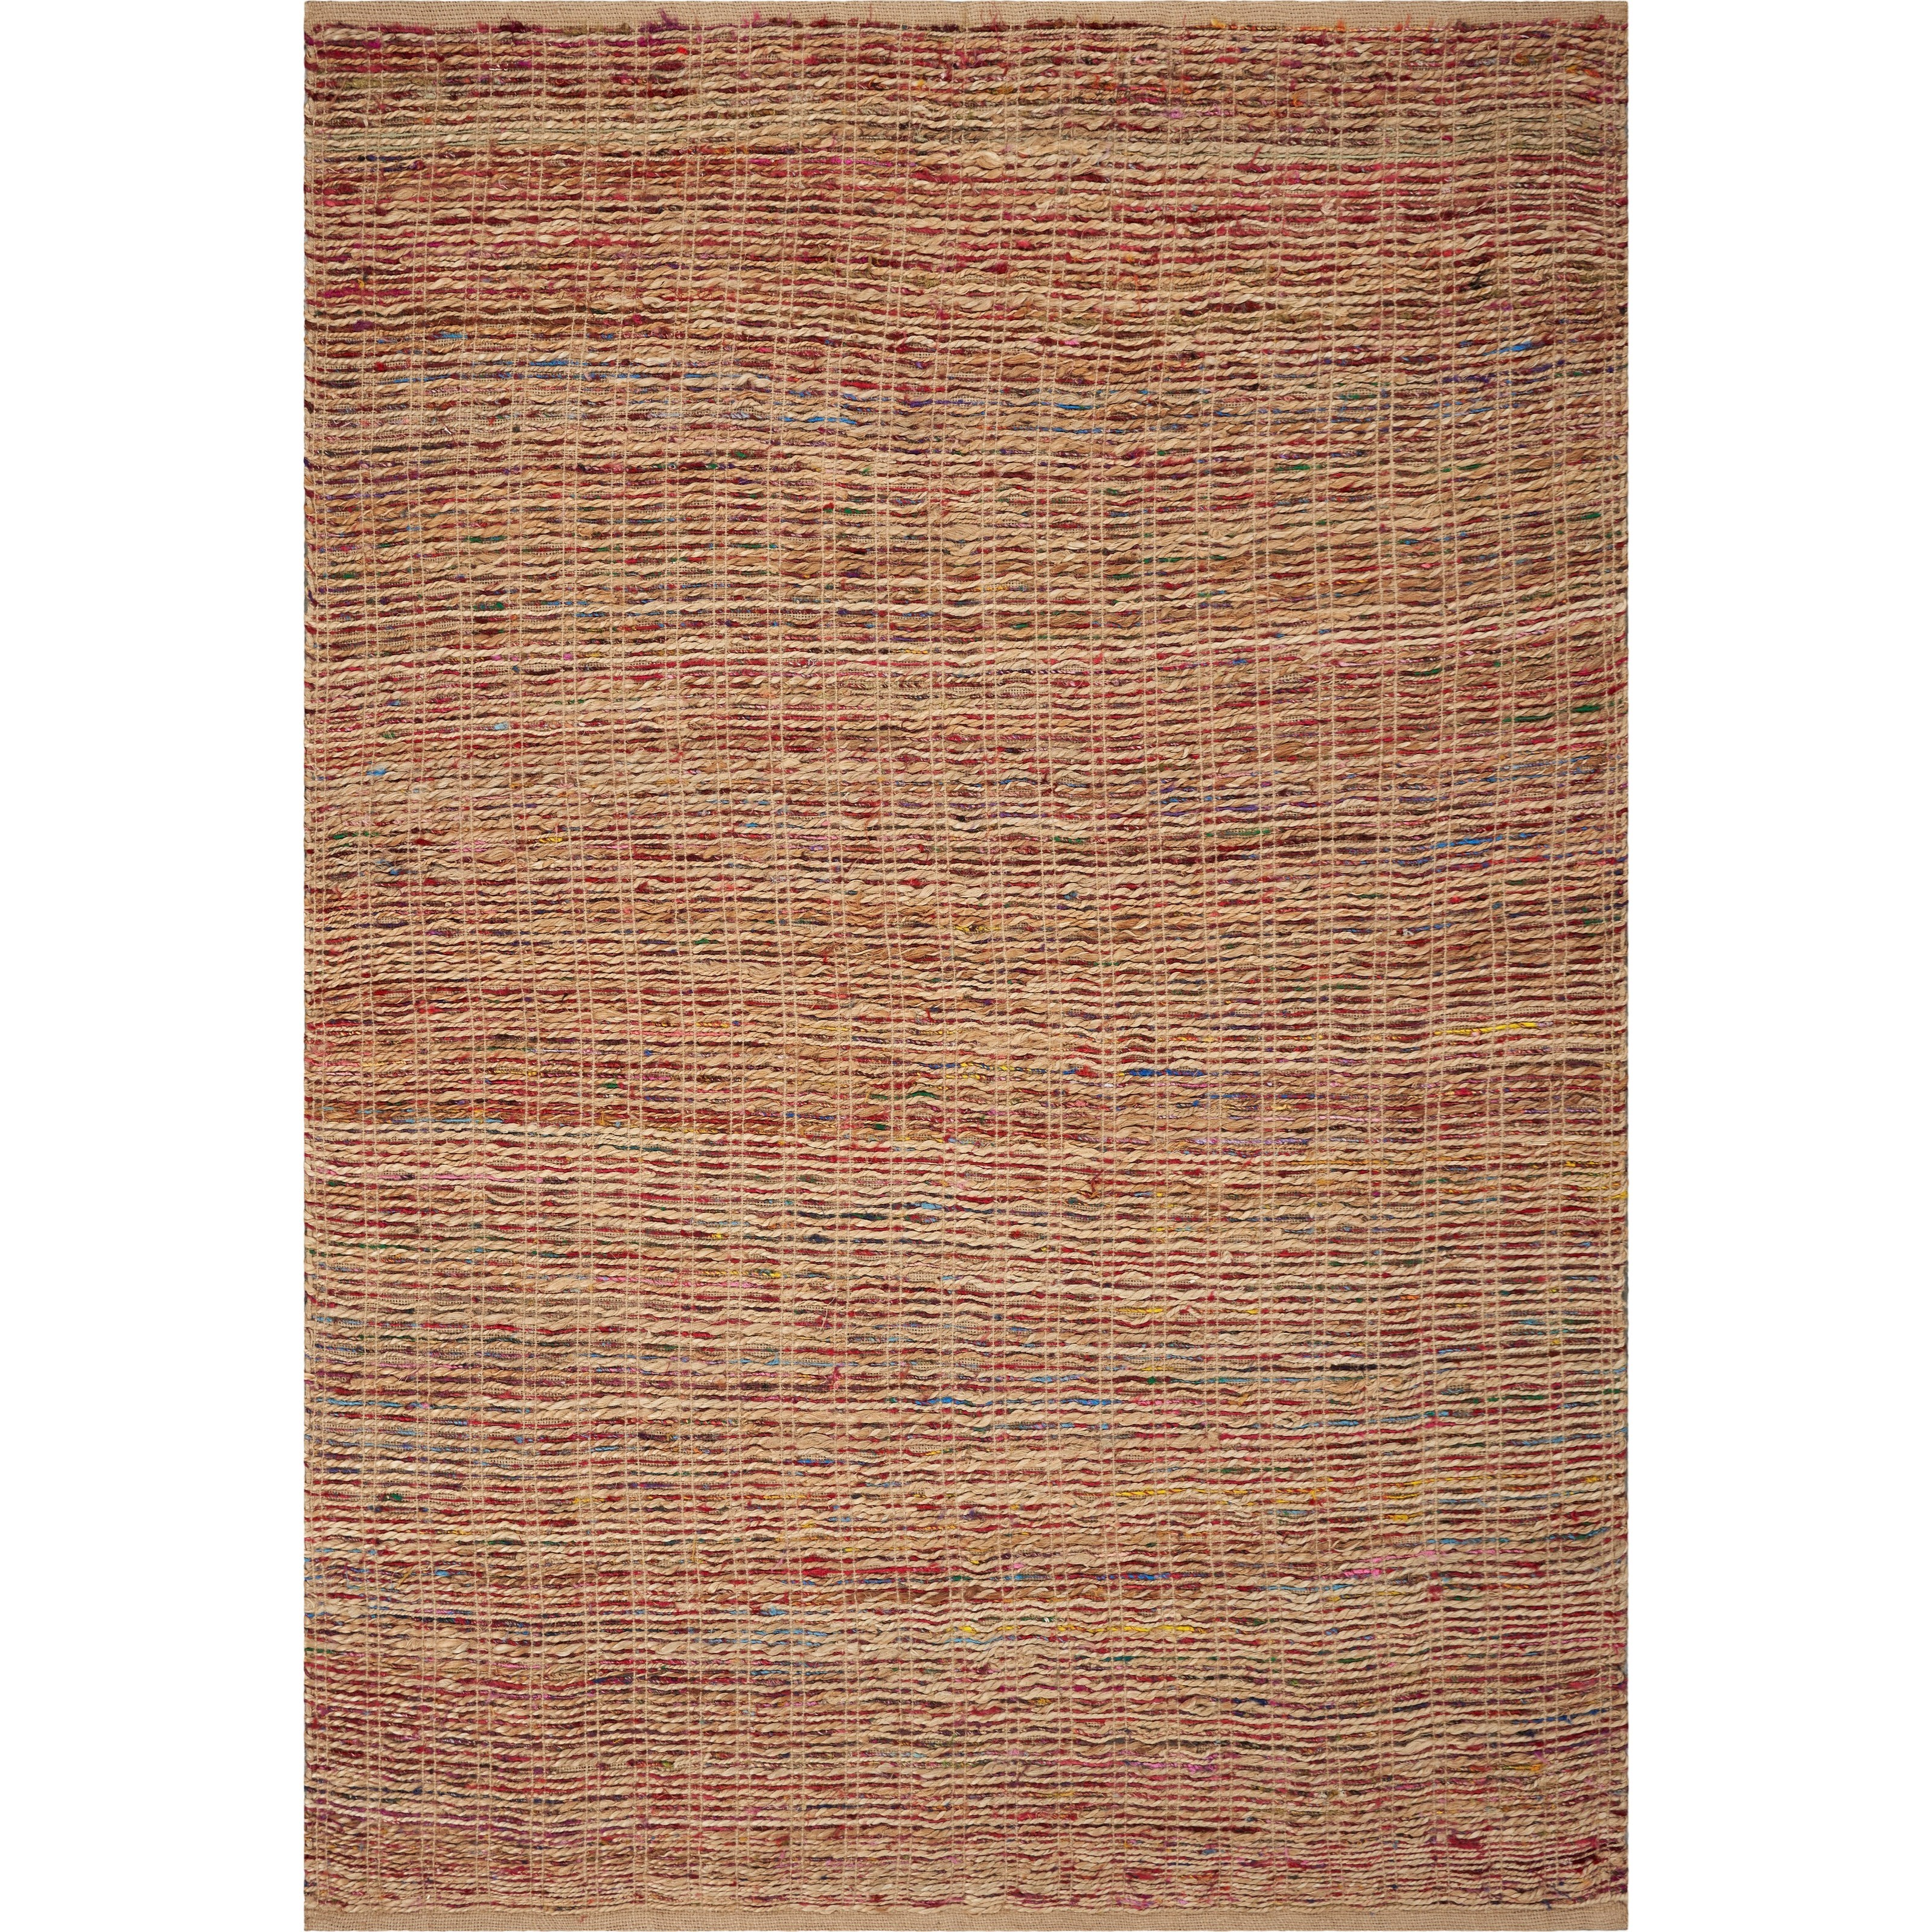 "8'6"" x 11'6"" Multicolor Sands Rug"